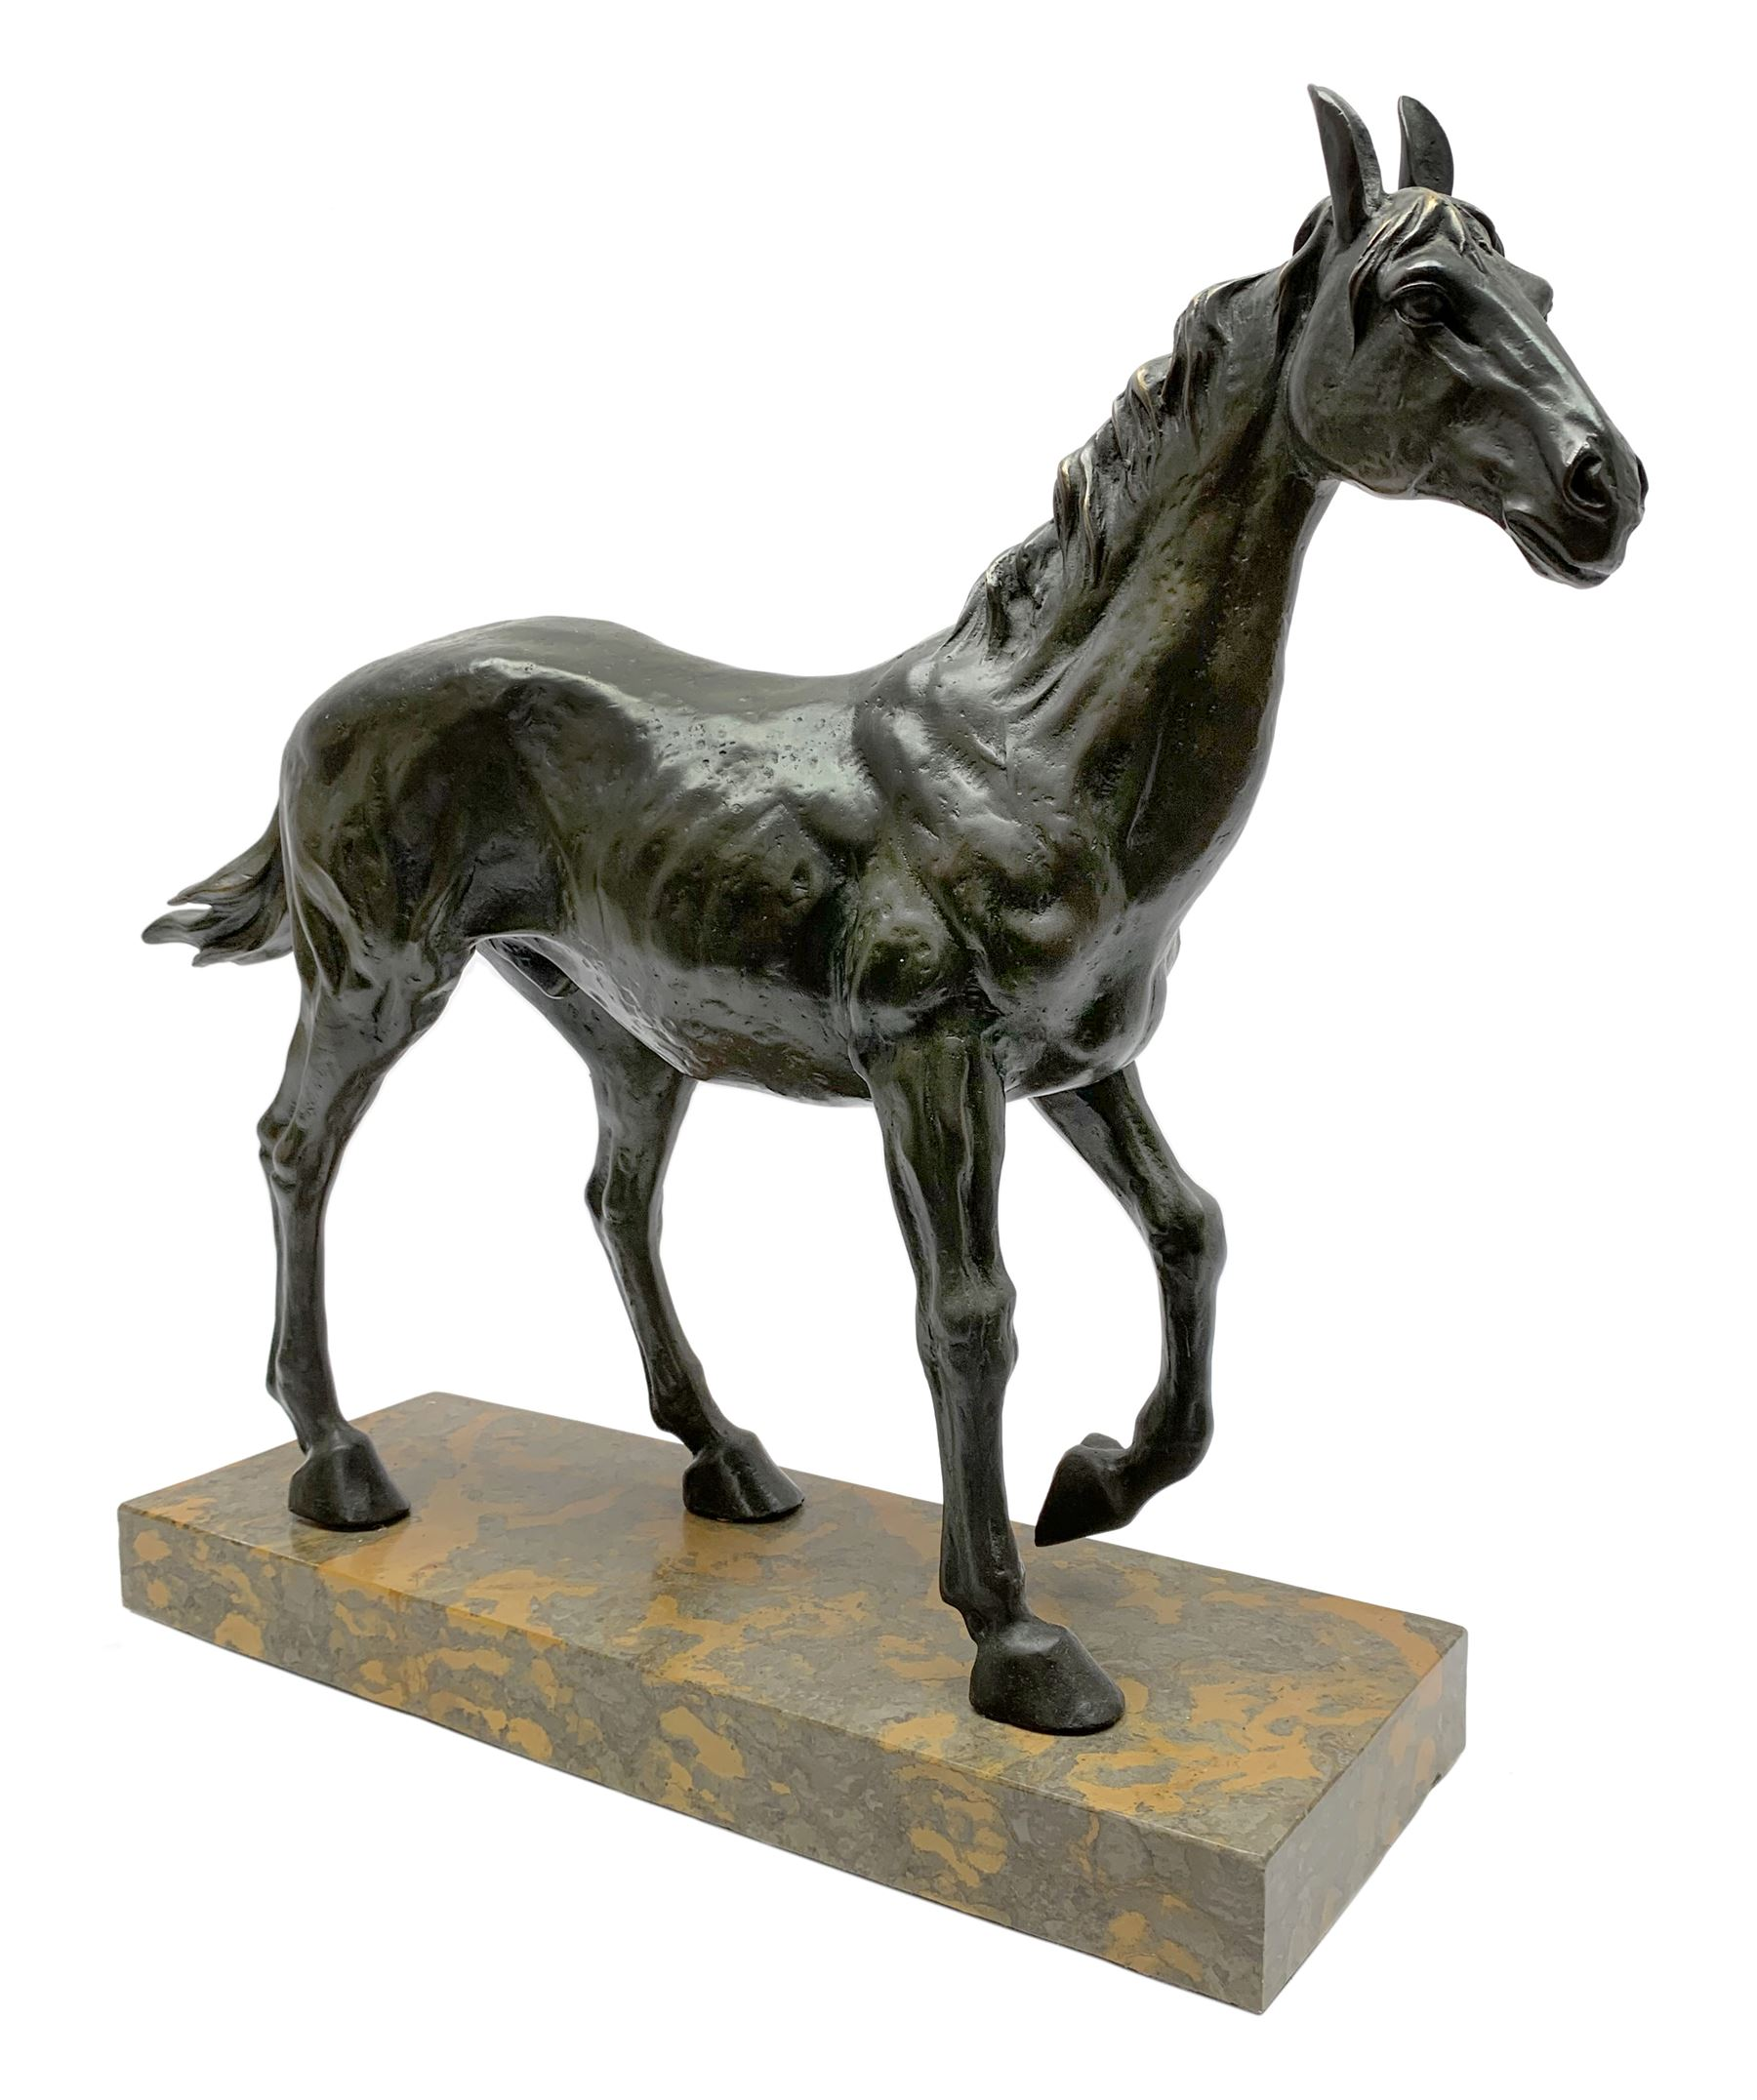 Large bronze study modelled as a horse